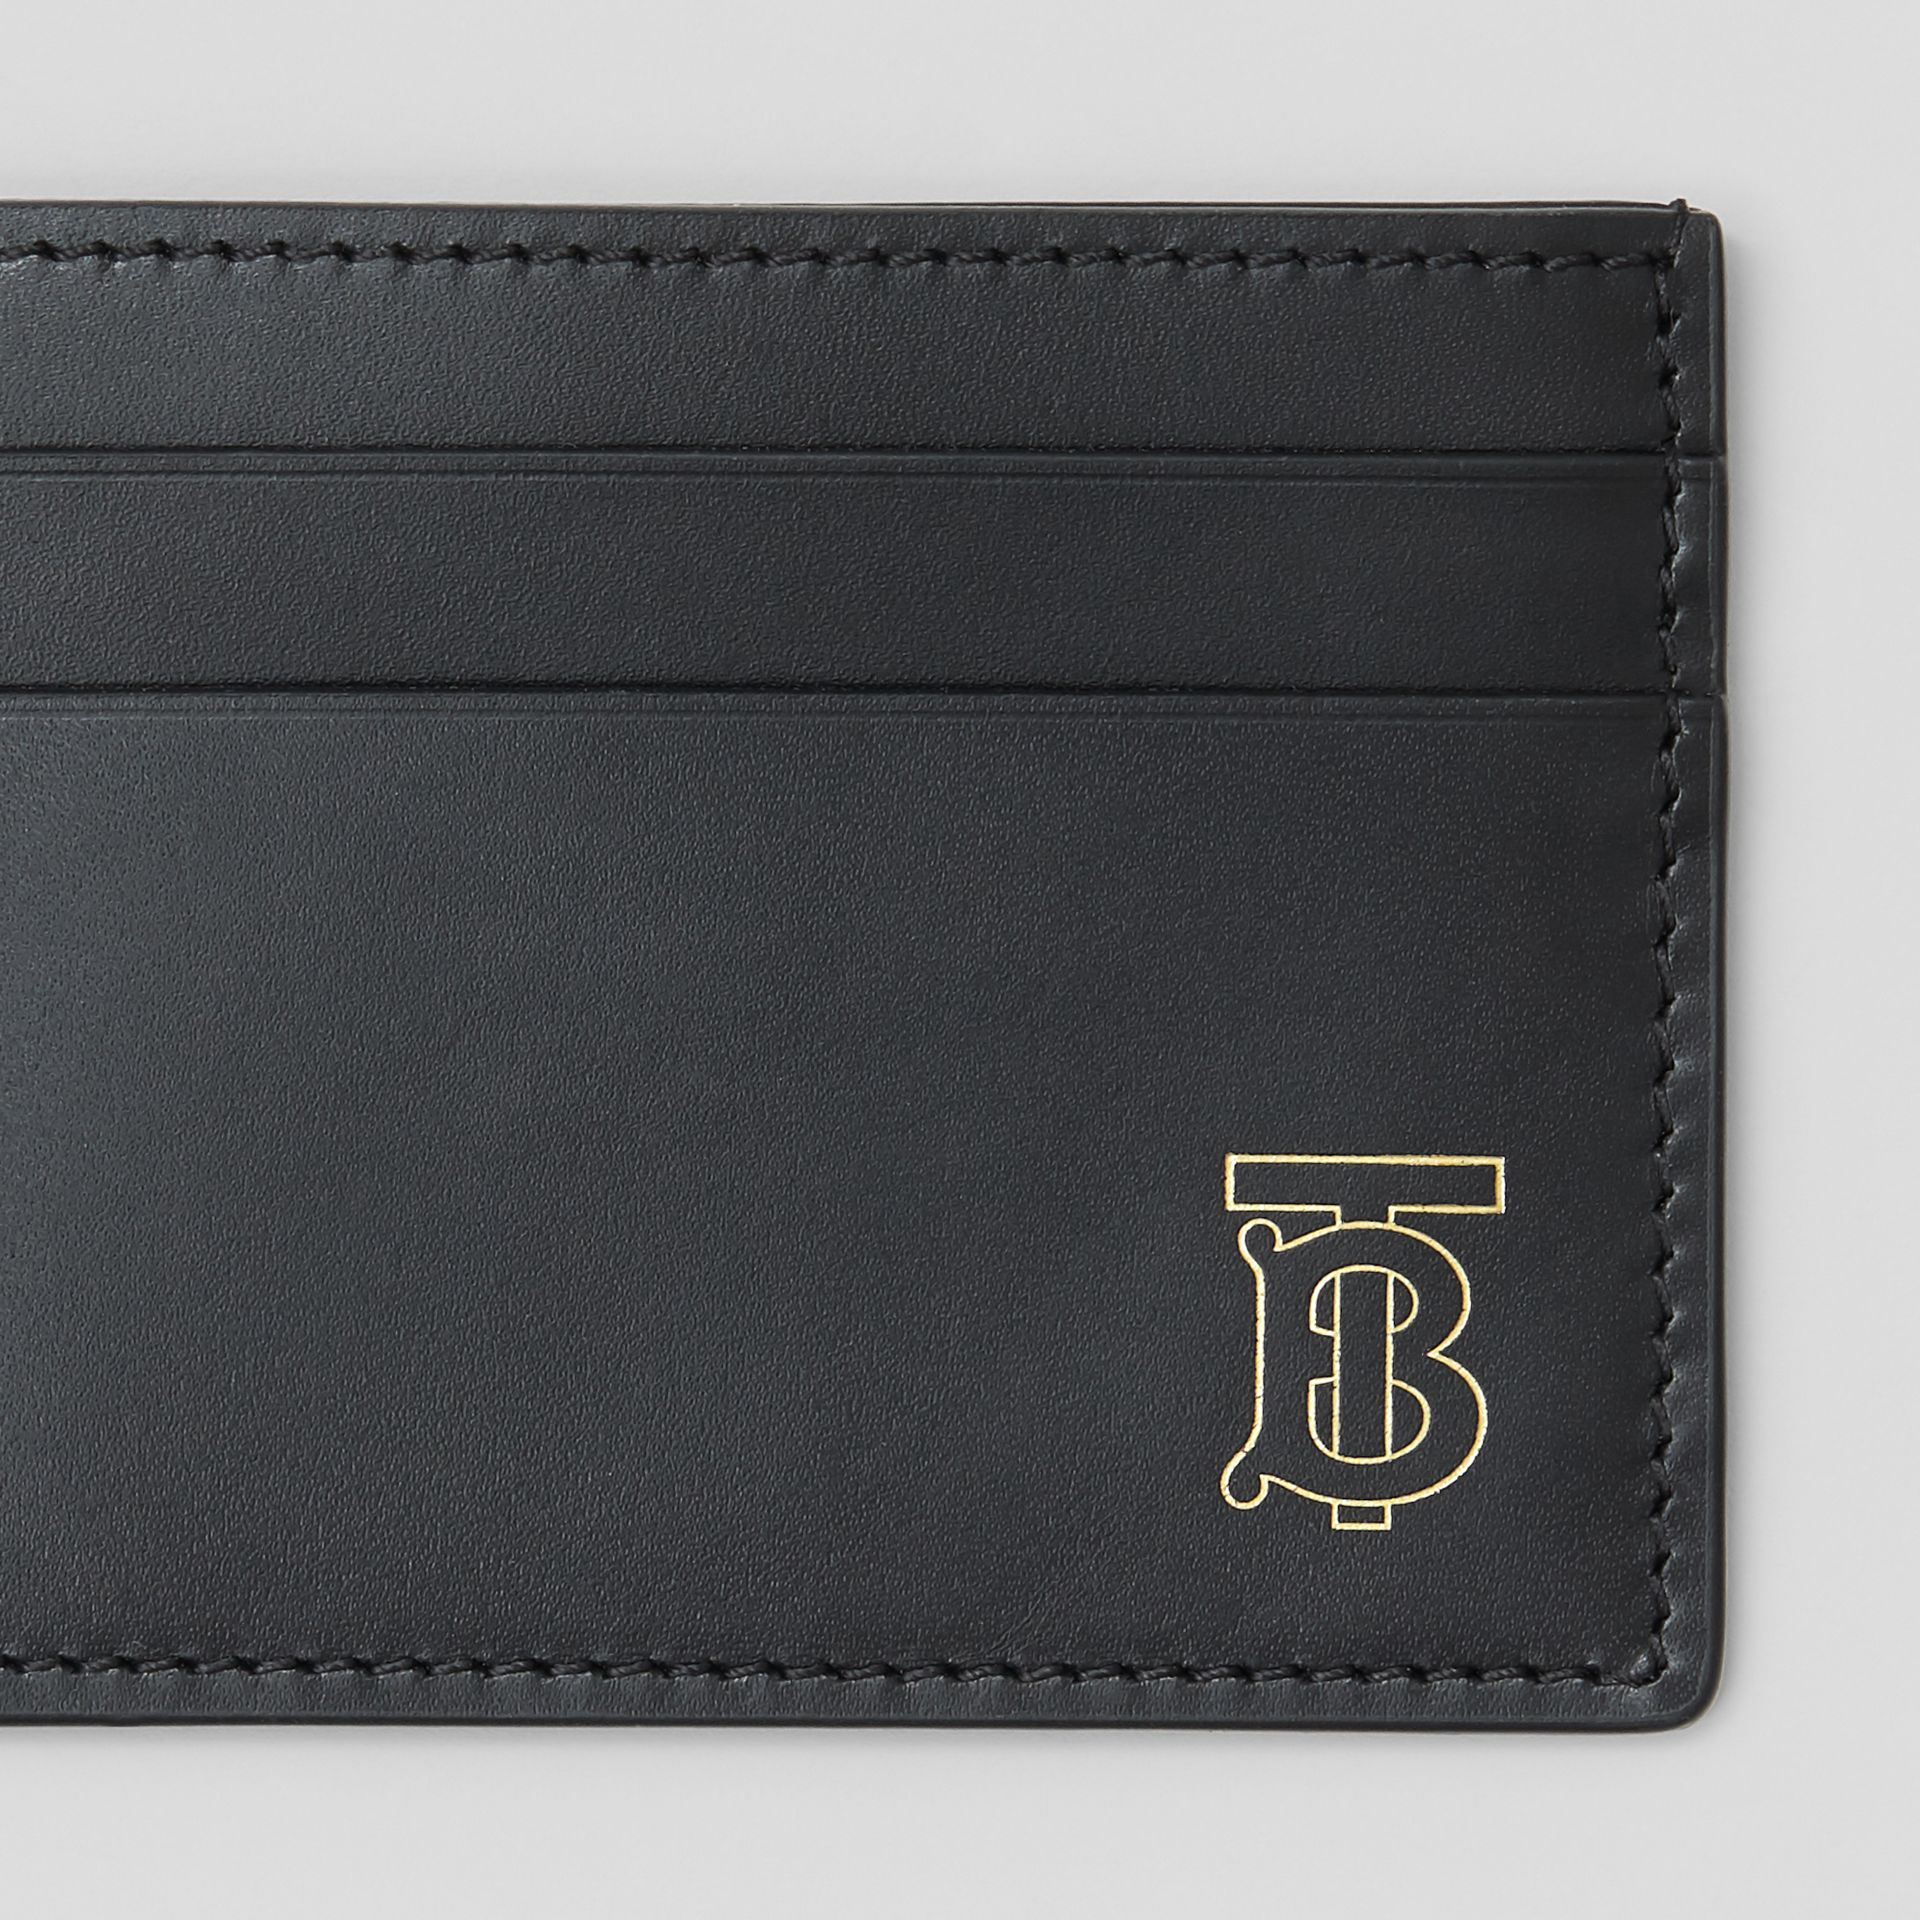 Monogram Motif Leather Card Case in Black - Men | Burberry - gallery image 1